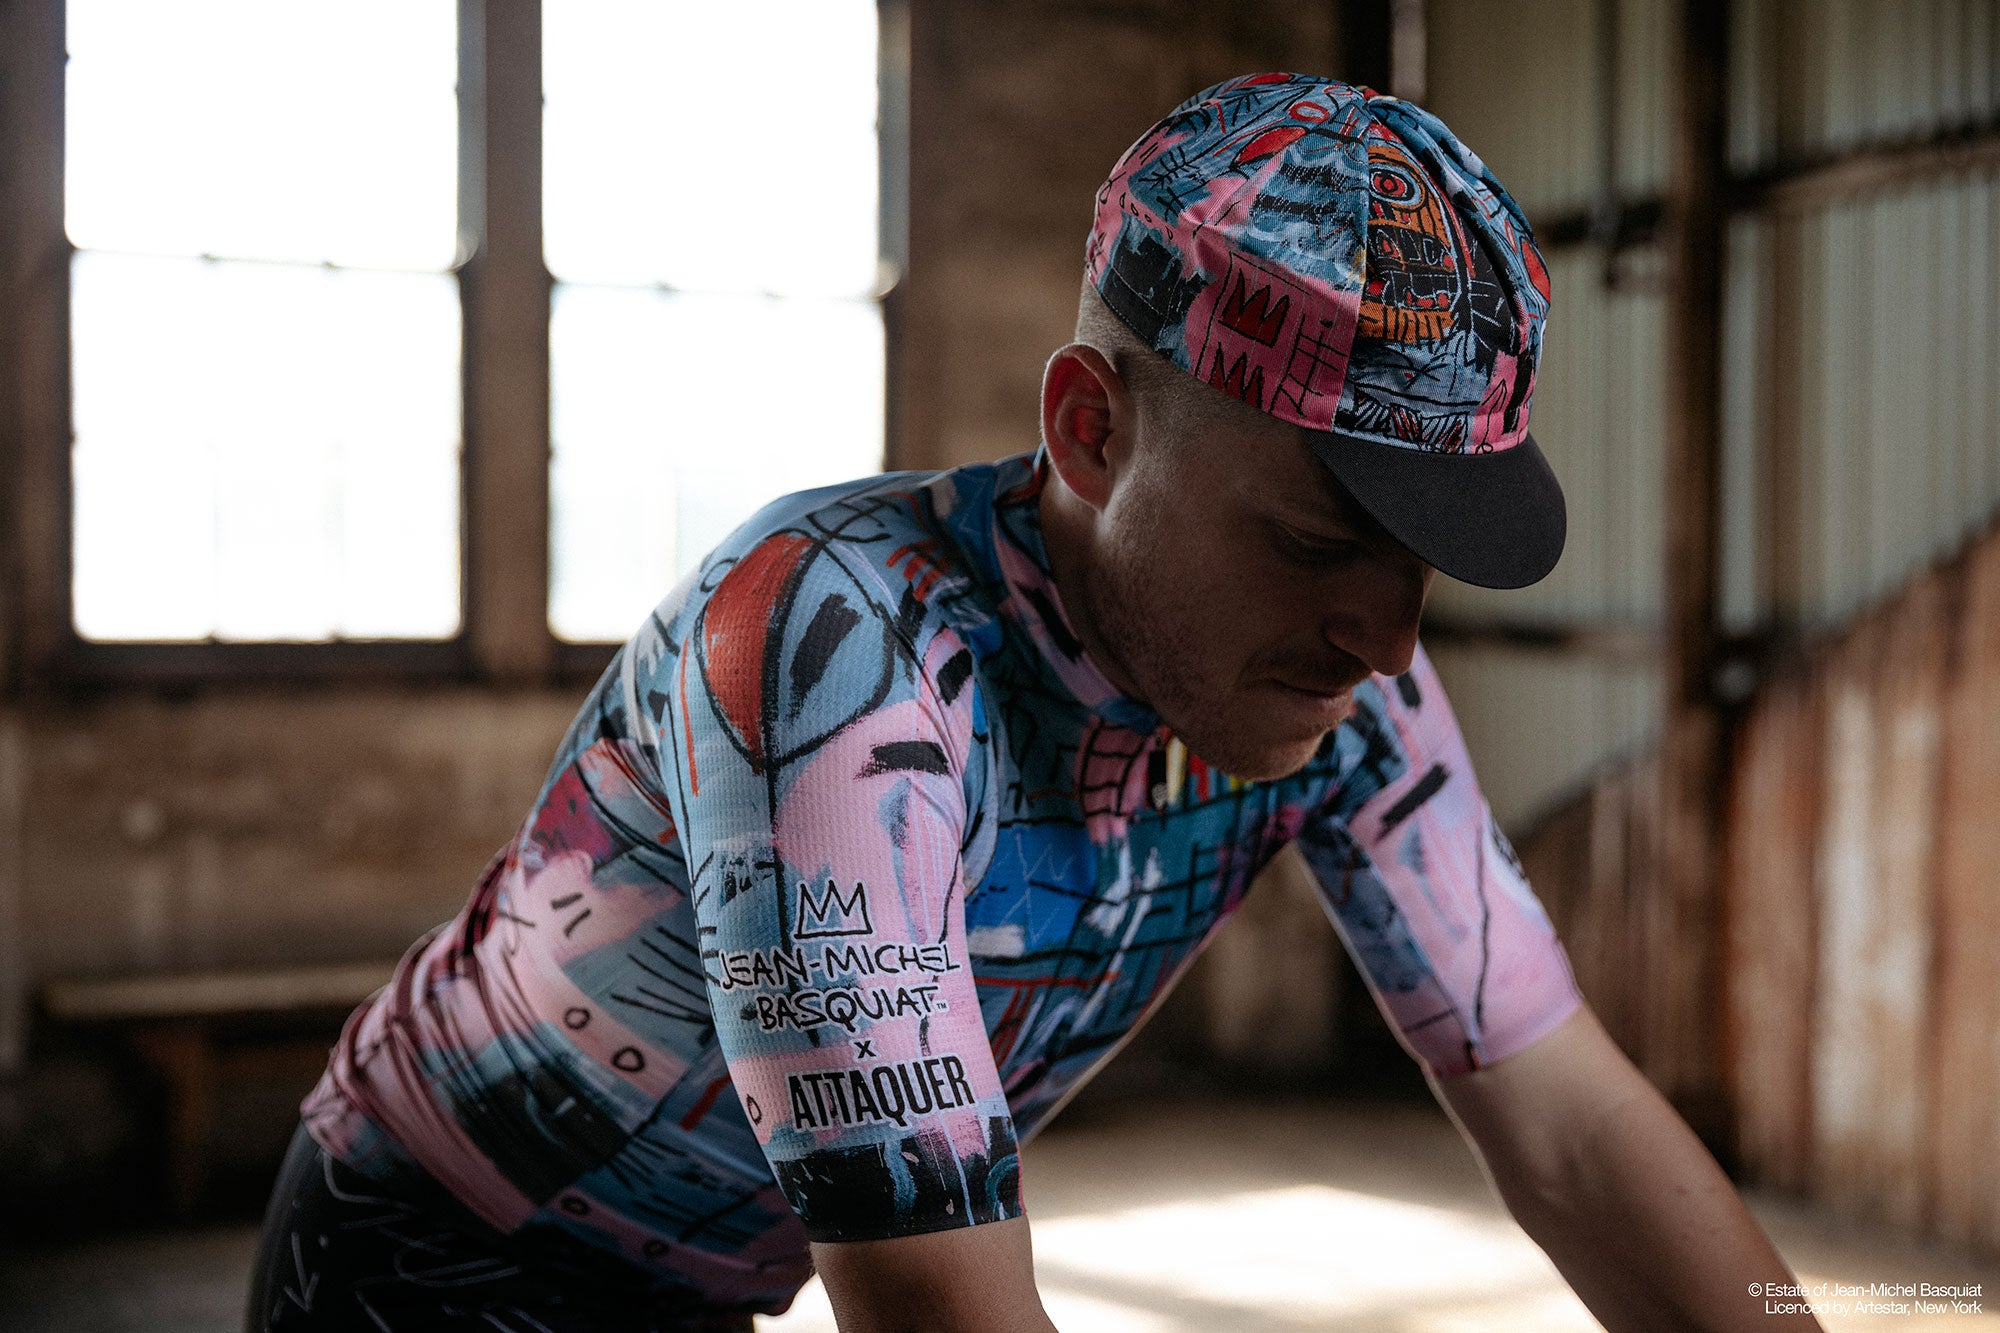 The Basquiat x Attaquer Cycling Apparel Collaboration dfad4fdef